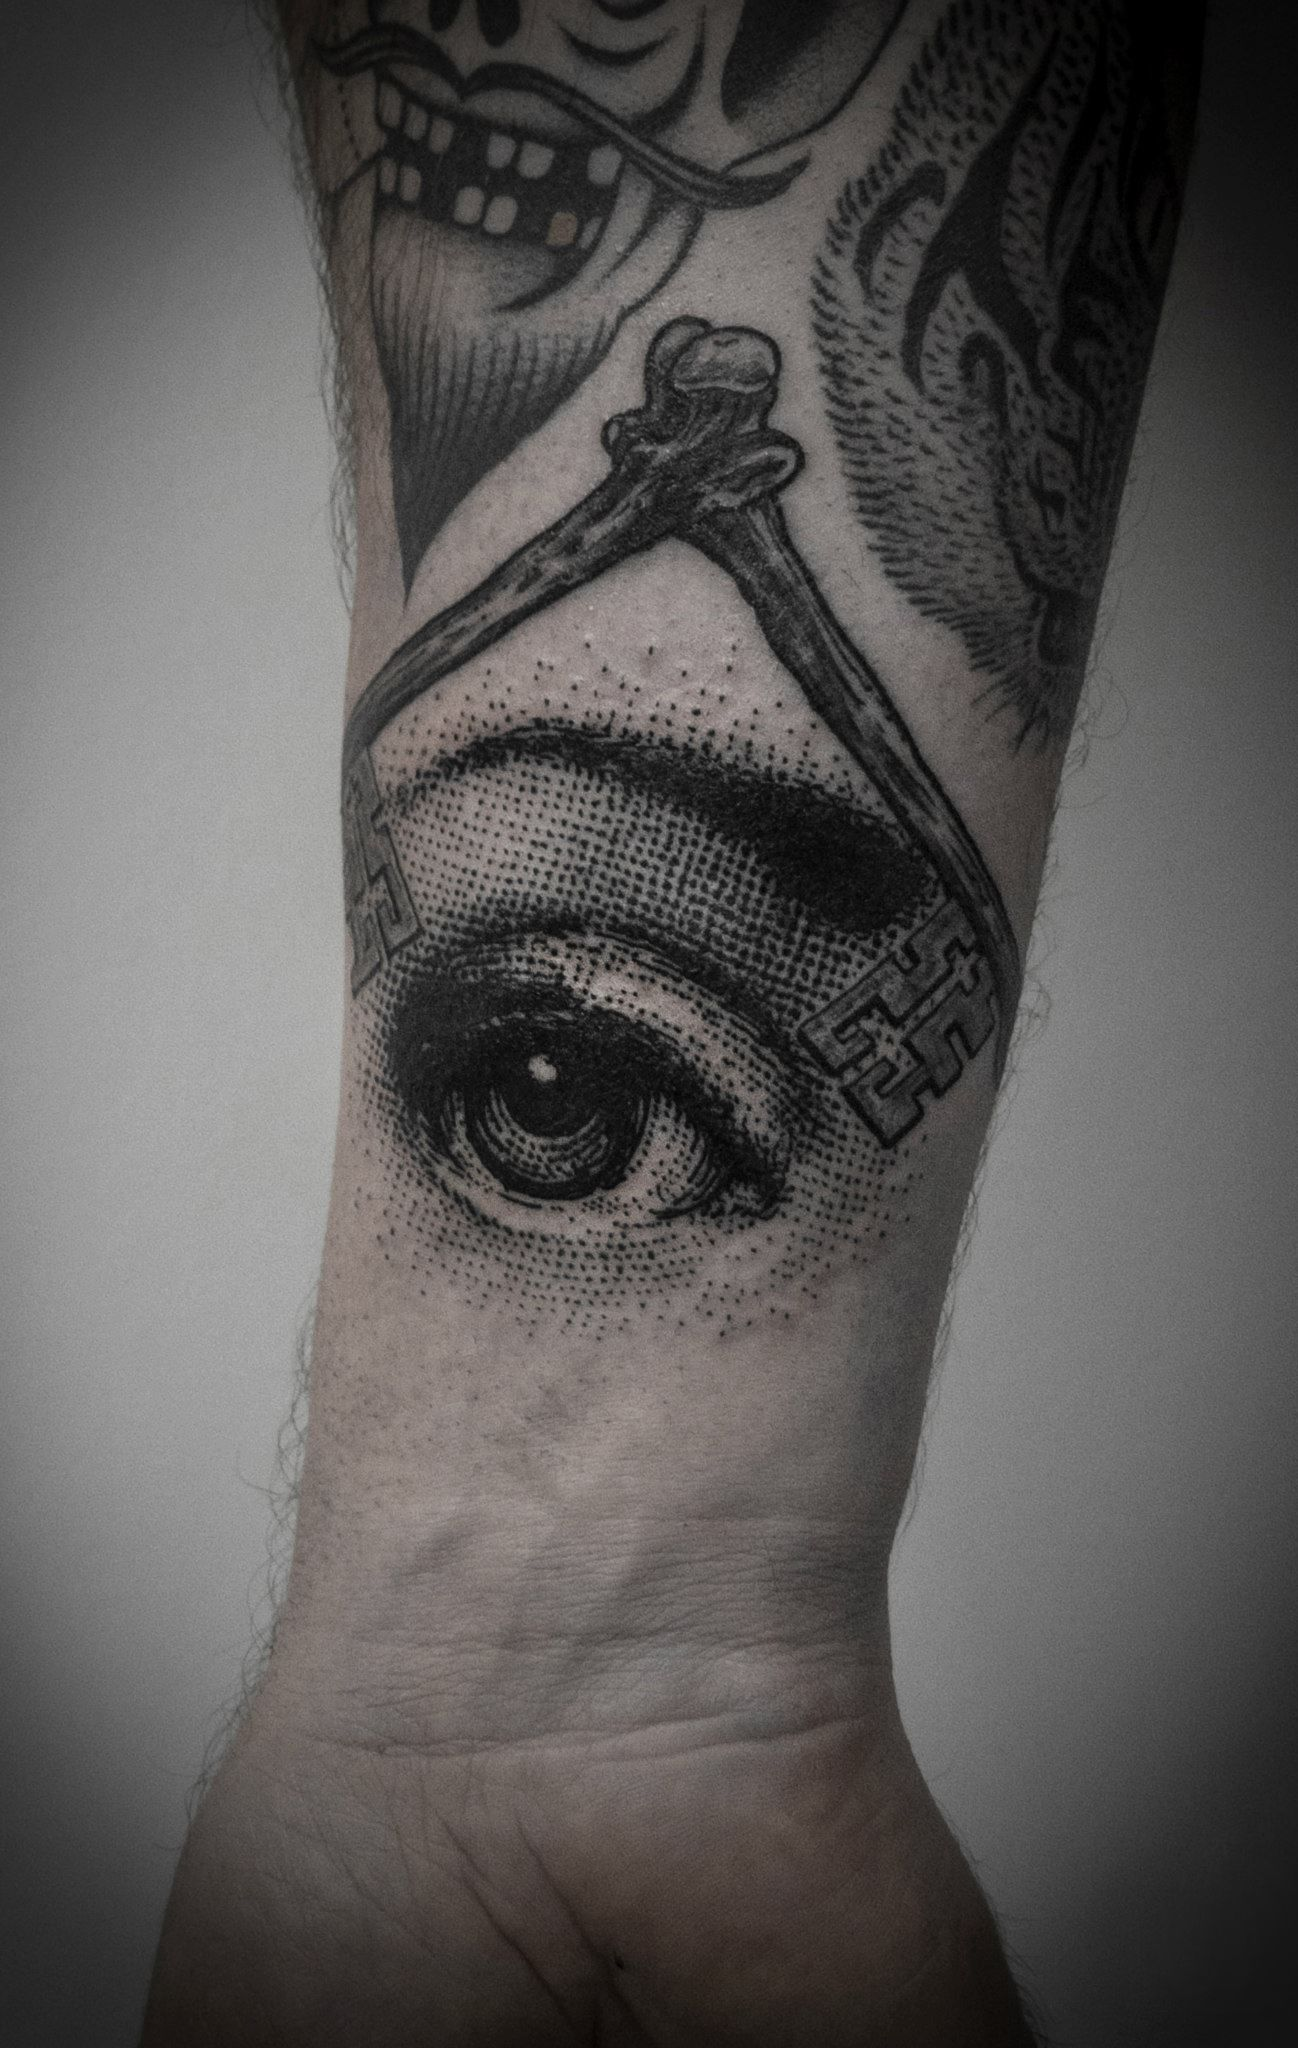 by Ien Levin - Fornasetti!